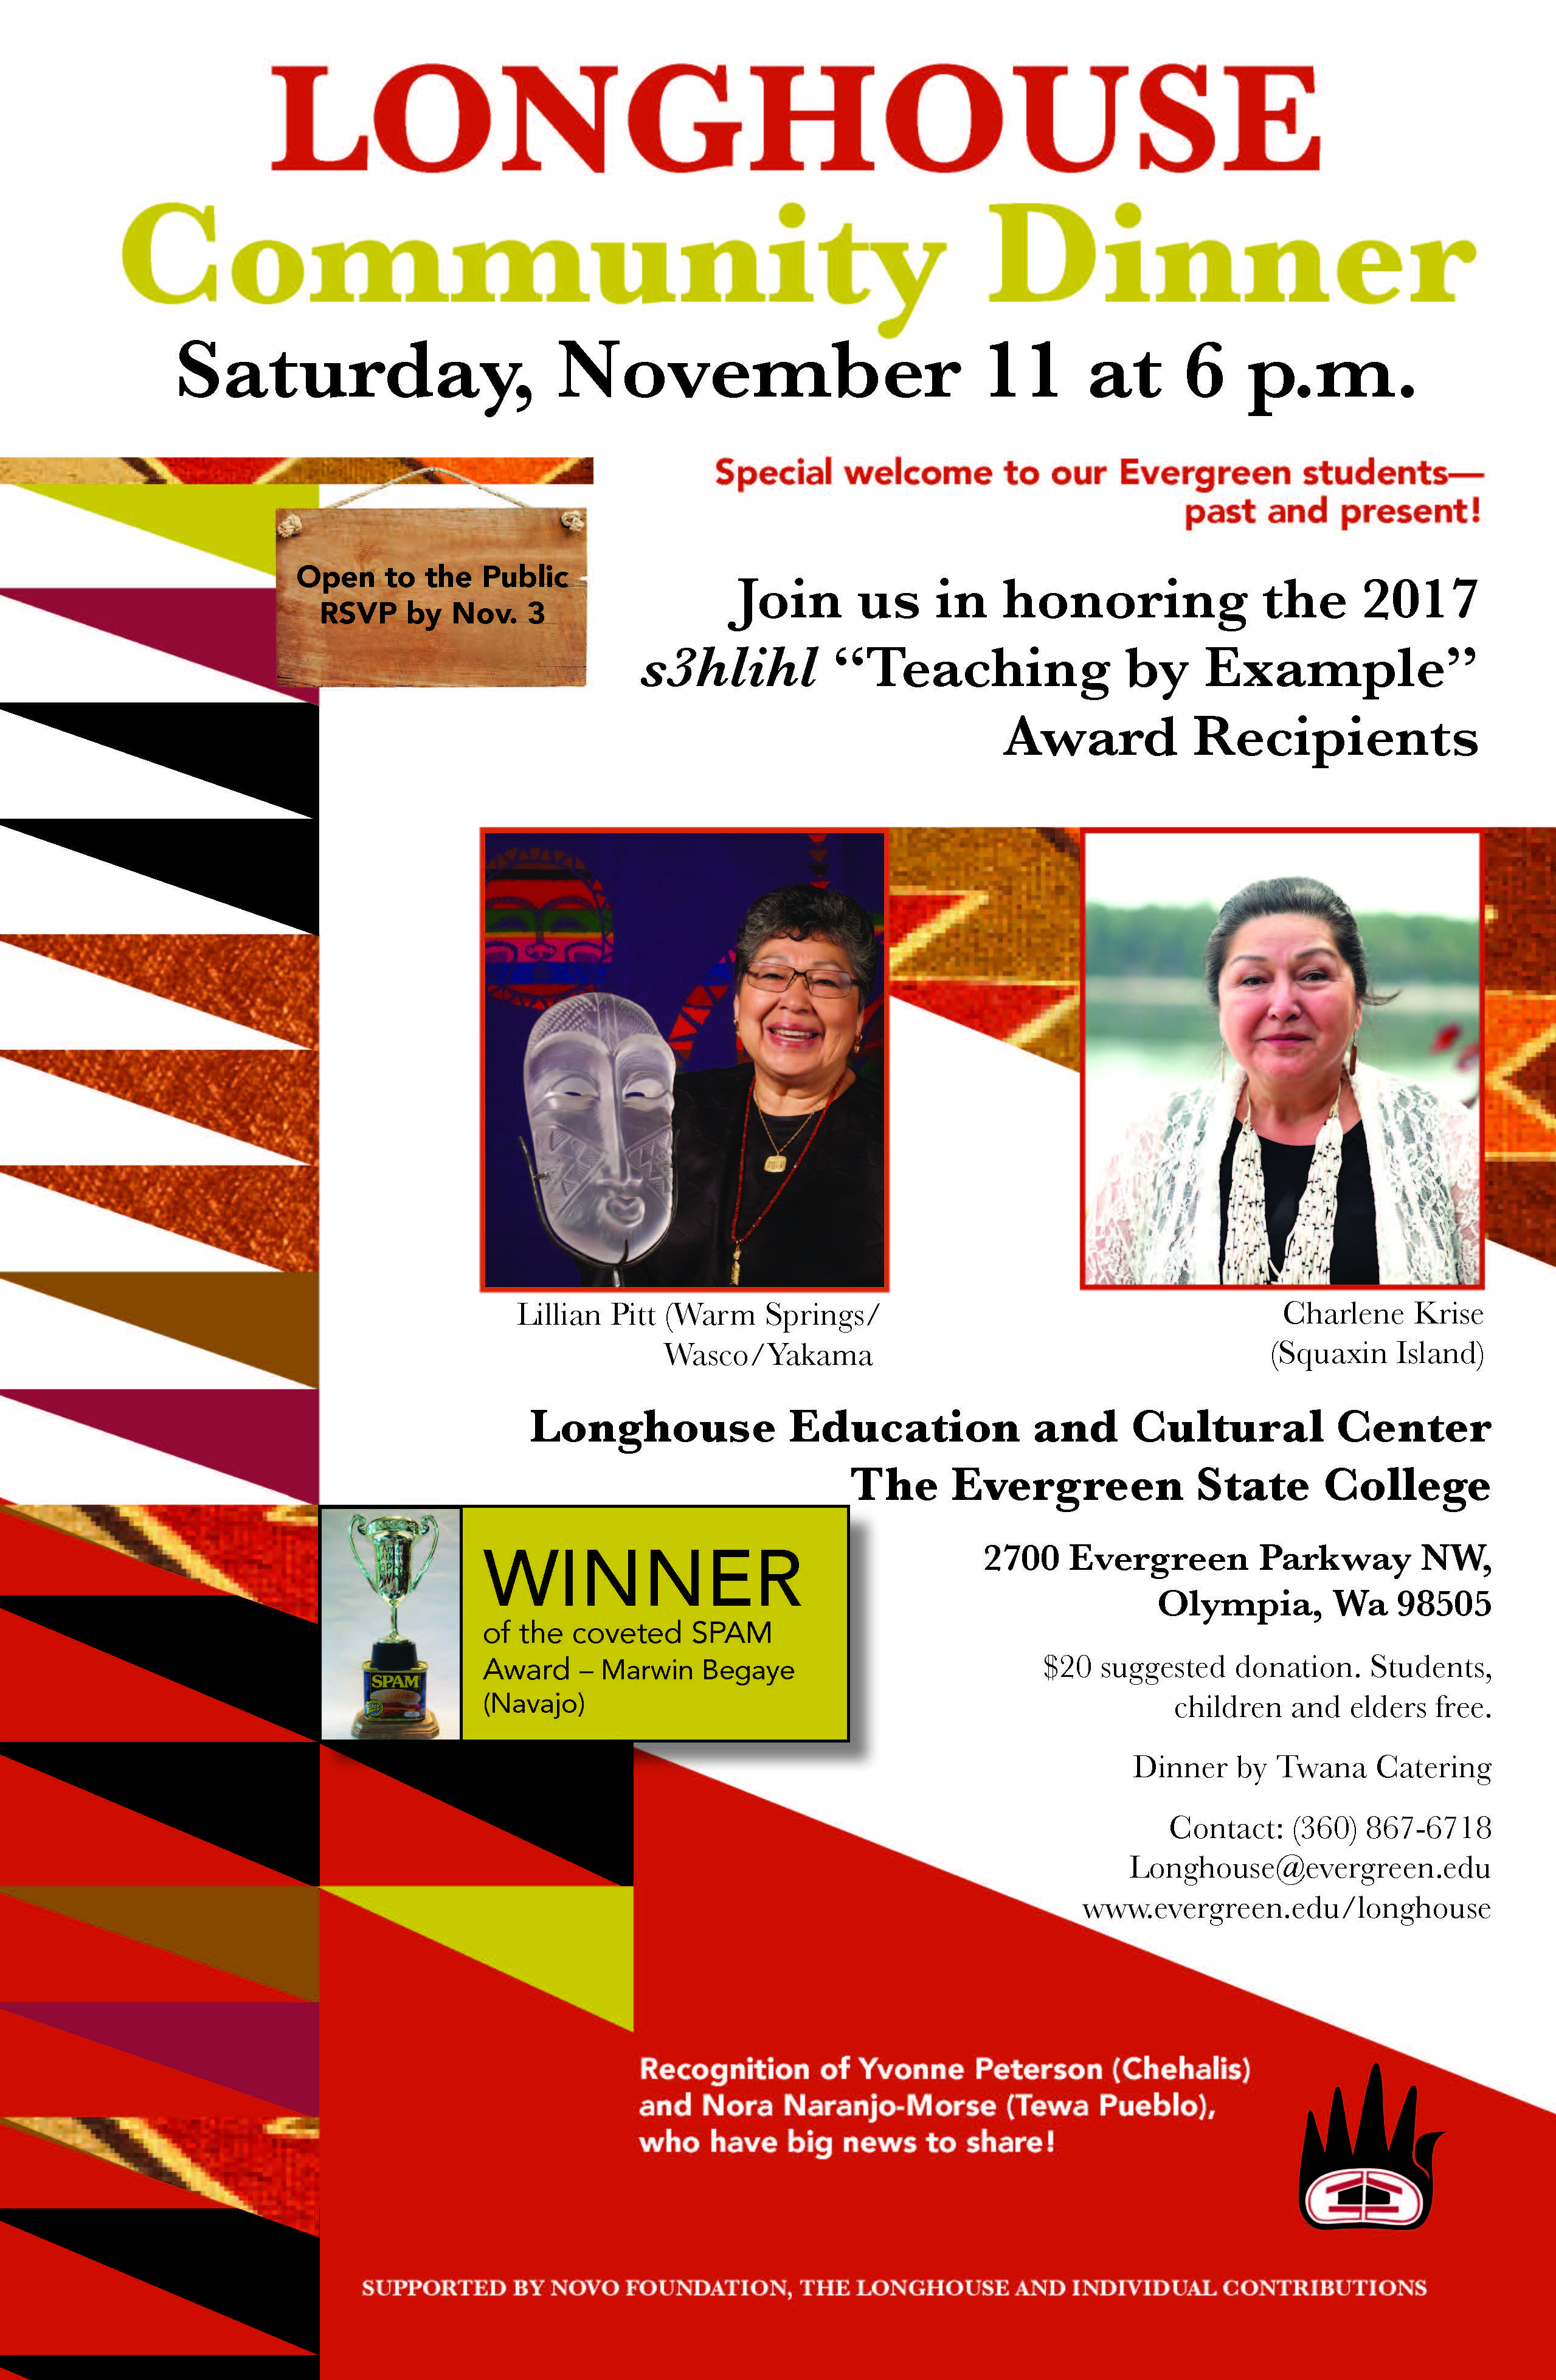 2017 Longhouse Community Dinner flyer with pictures of Lillian Pitt and Charlene Krise.